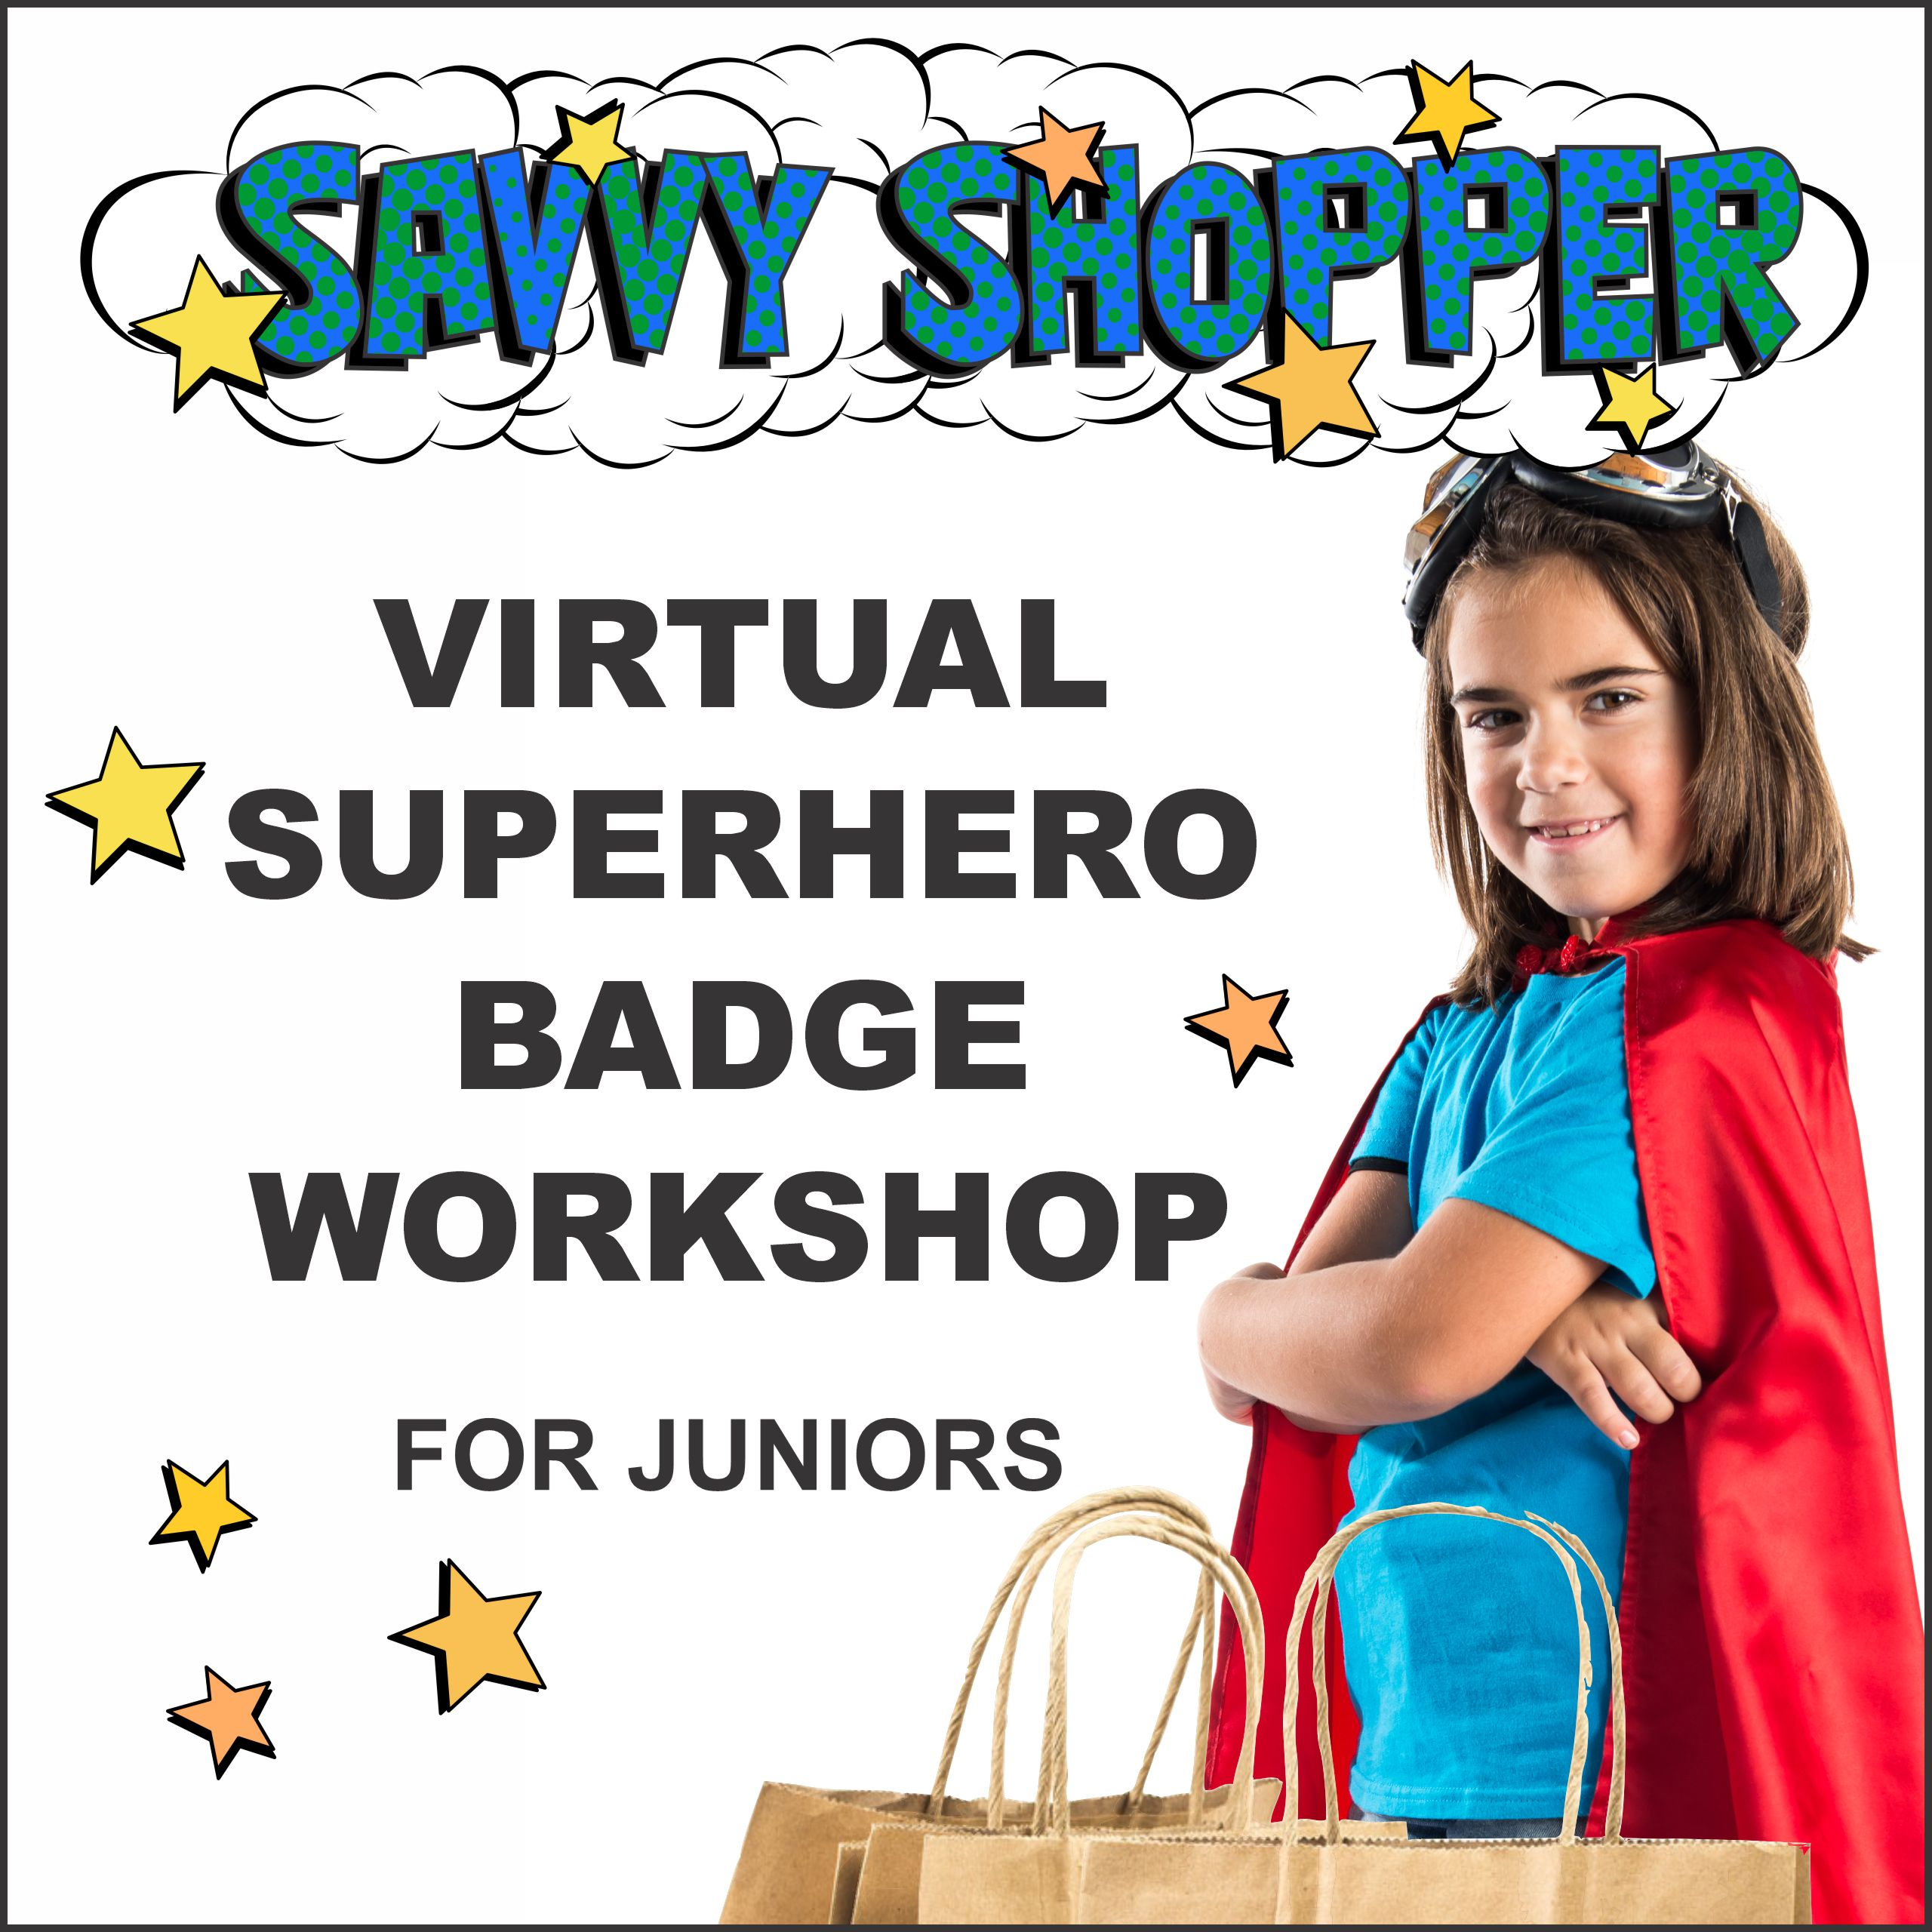 Girl Scout Superhero Savvy Shopper Virtual Workshop for Juniors